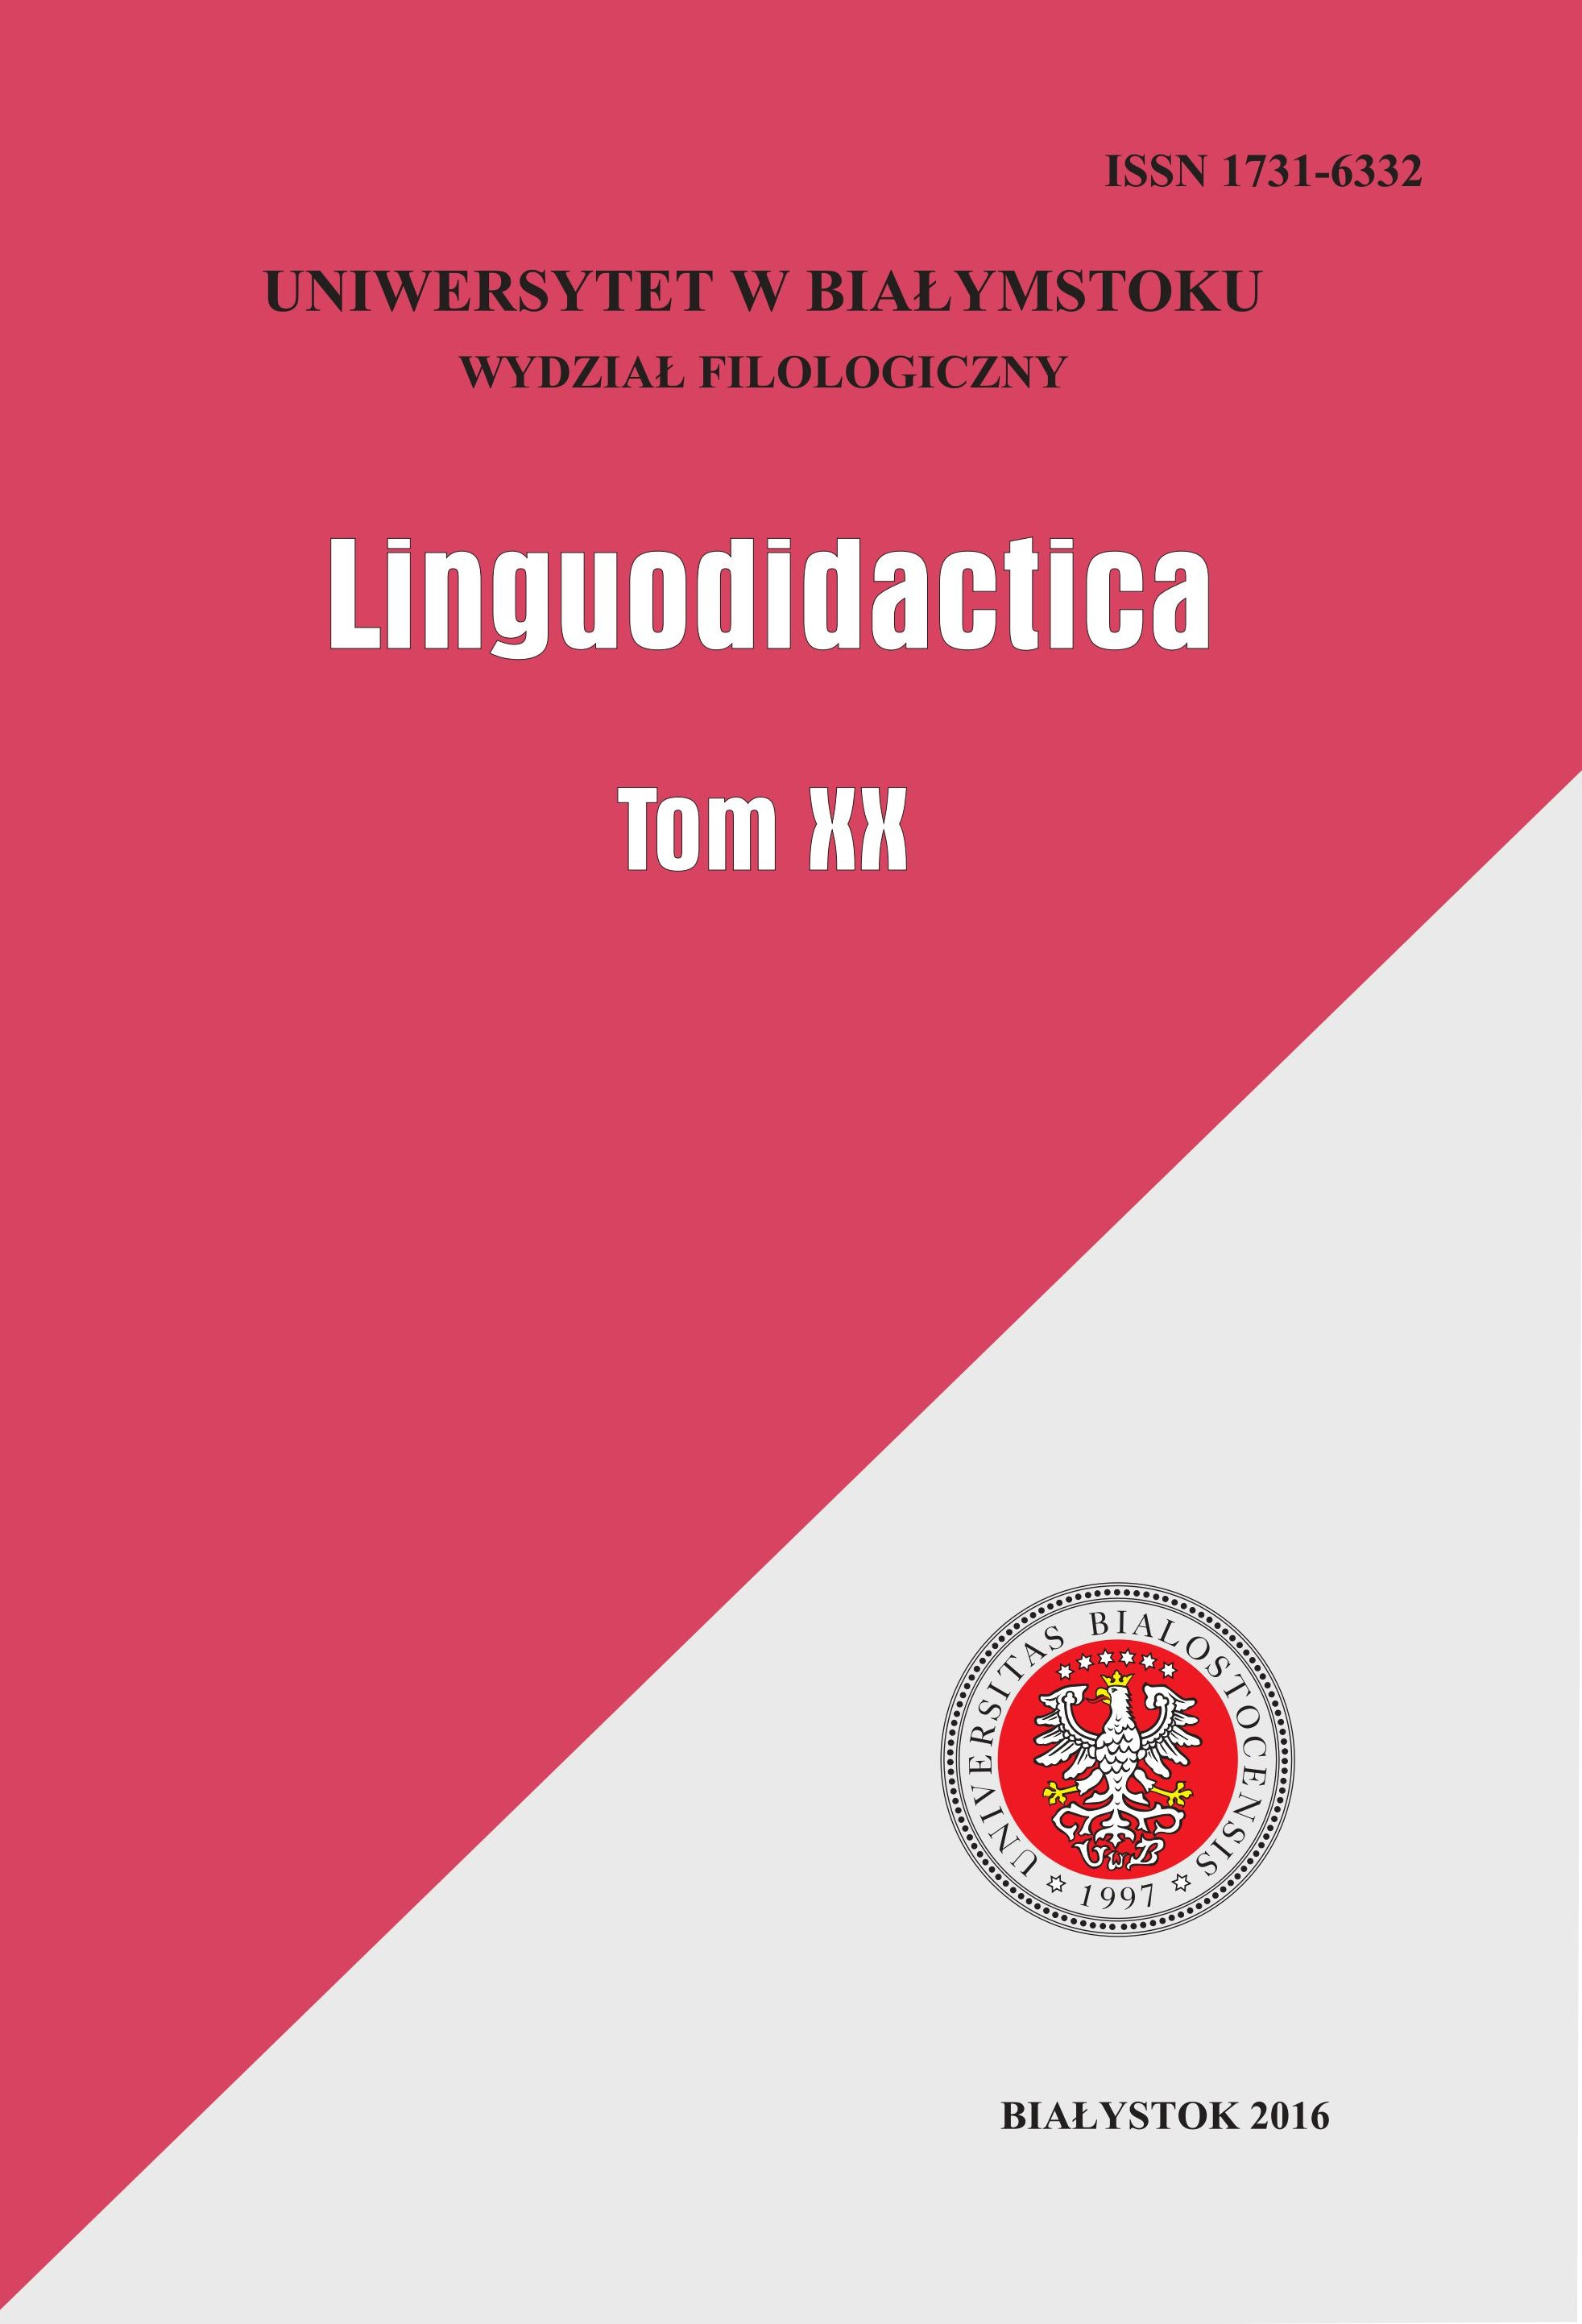 Linguodidactica Cover Image